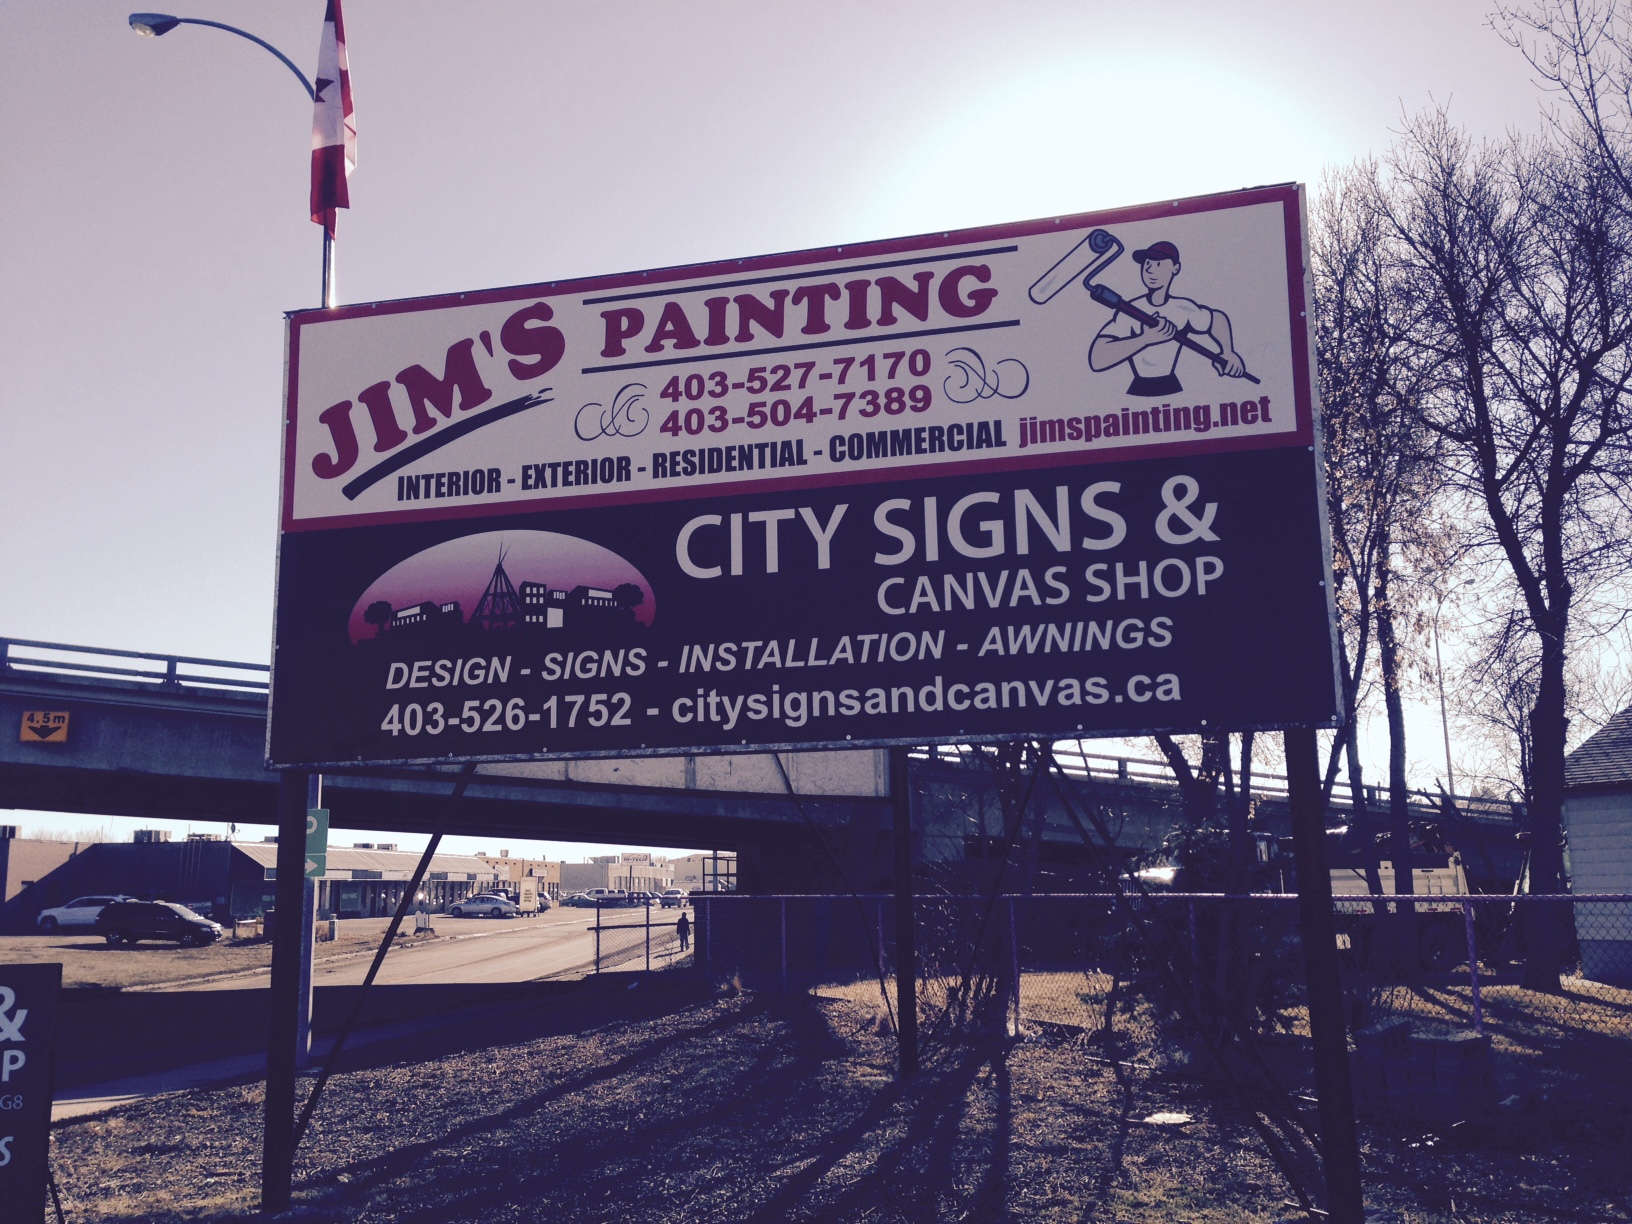 Installed Jim's Painting Signage